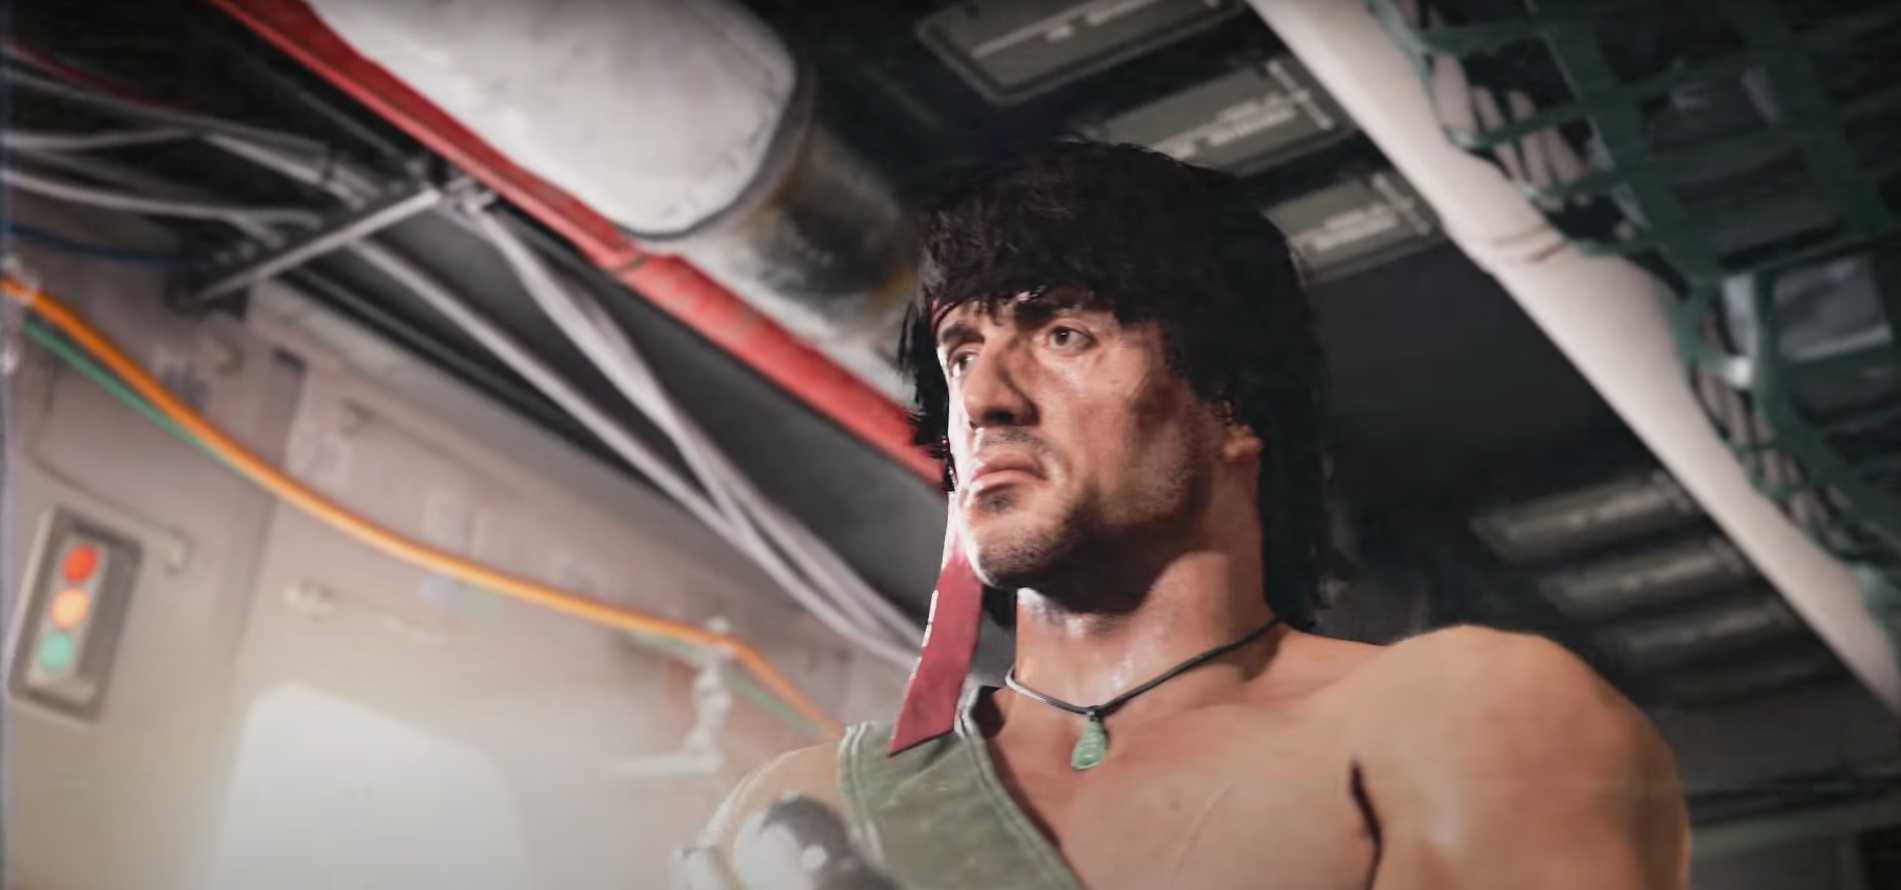 Rambo from Call of Duty: Warzone stands in a helicopter and holds an SMG